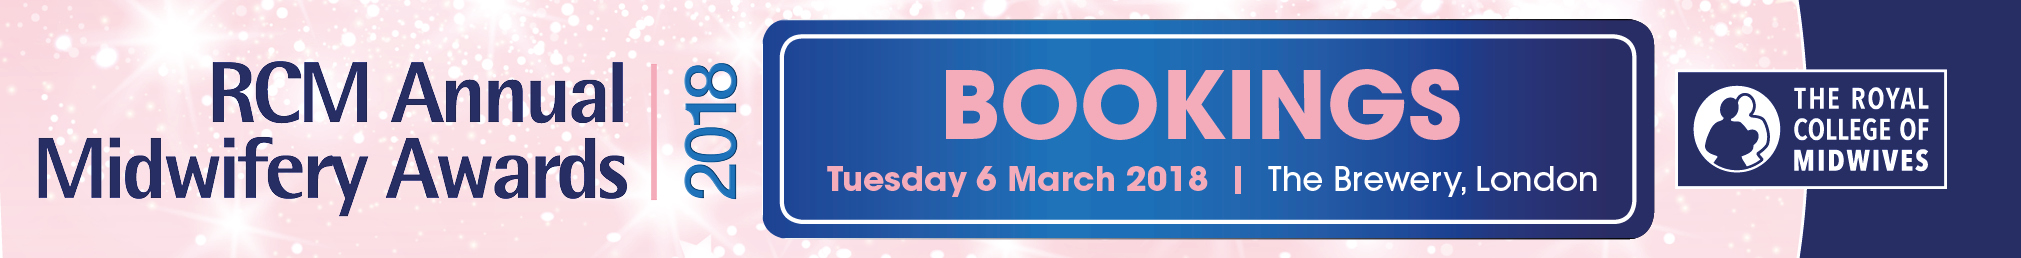 RCM Annual Midwifery Awards 2018 - Table Bookings